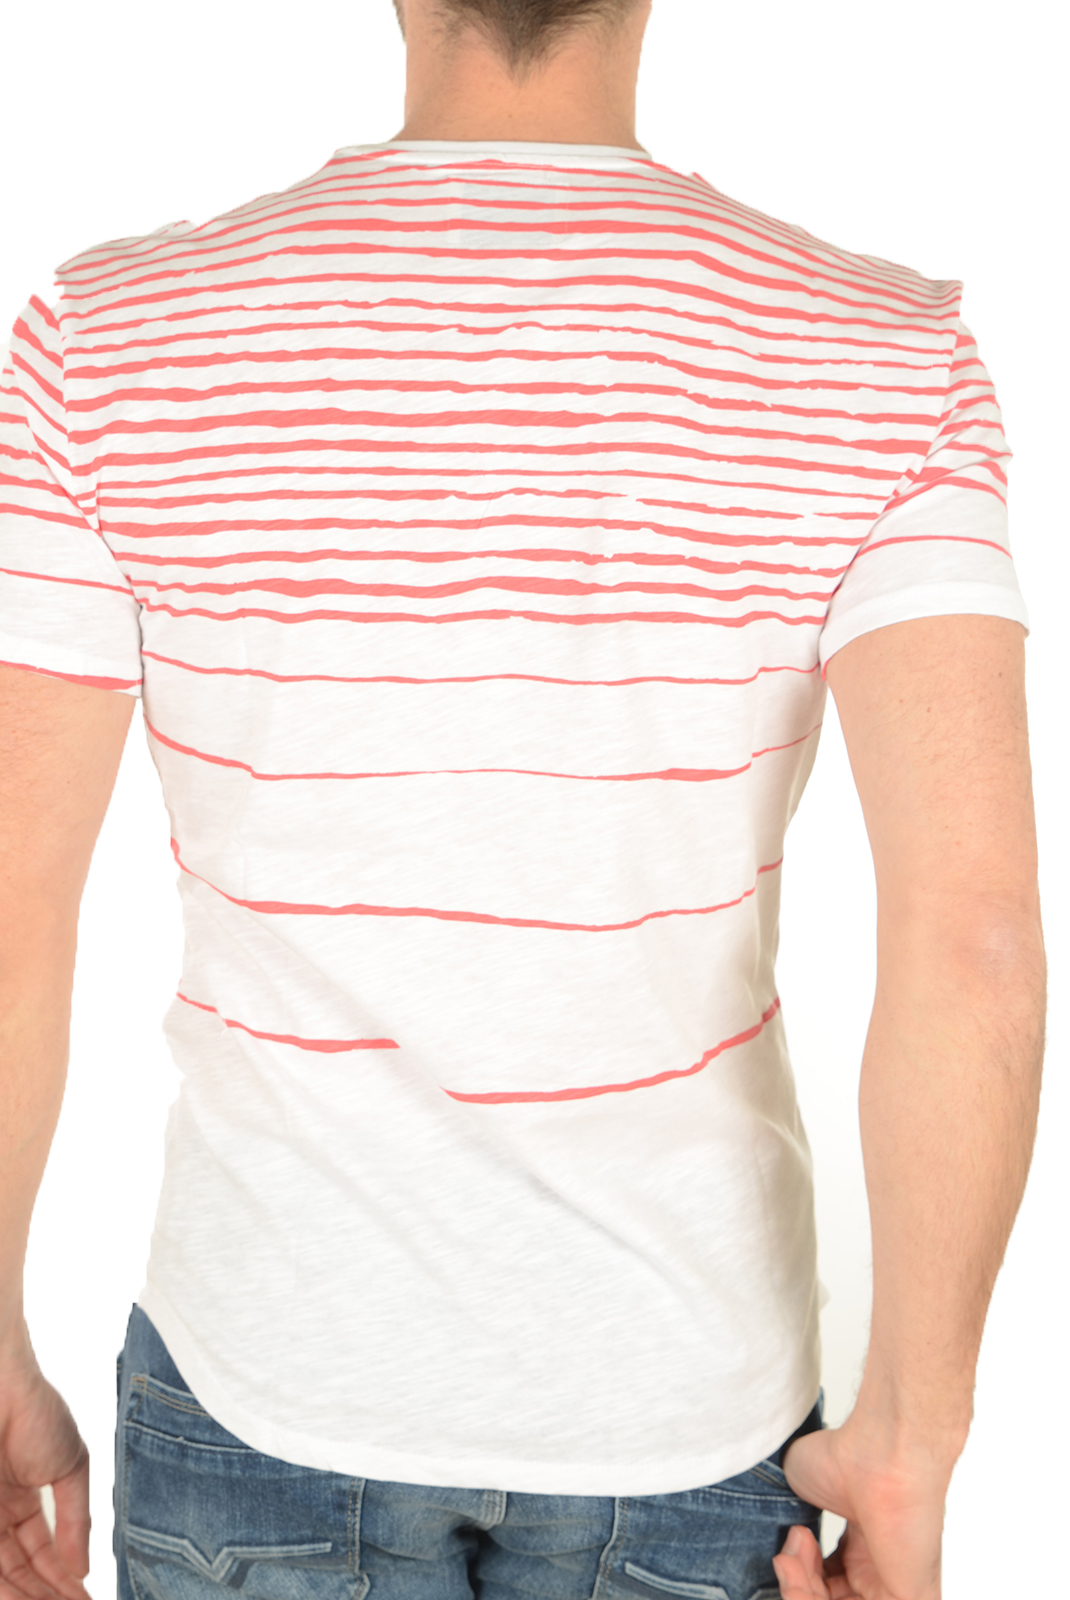 Tee-shirts manches courtes  Guess jeans M72P27 K4YI0 A543 BLANC ROUGE